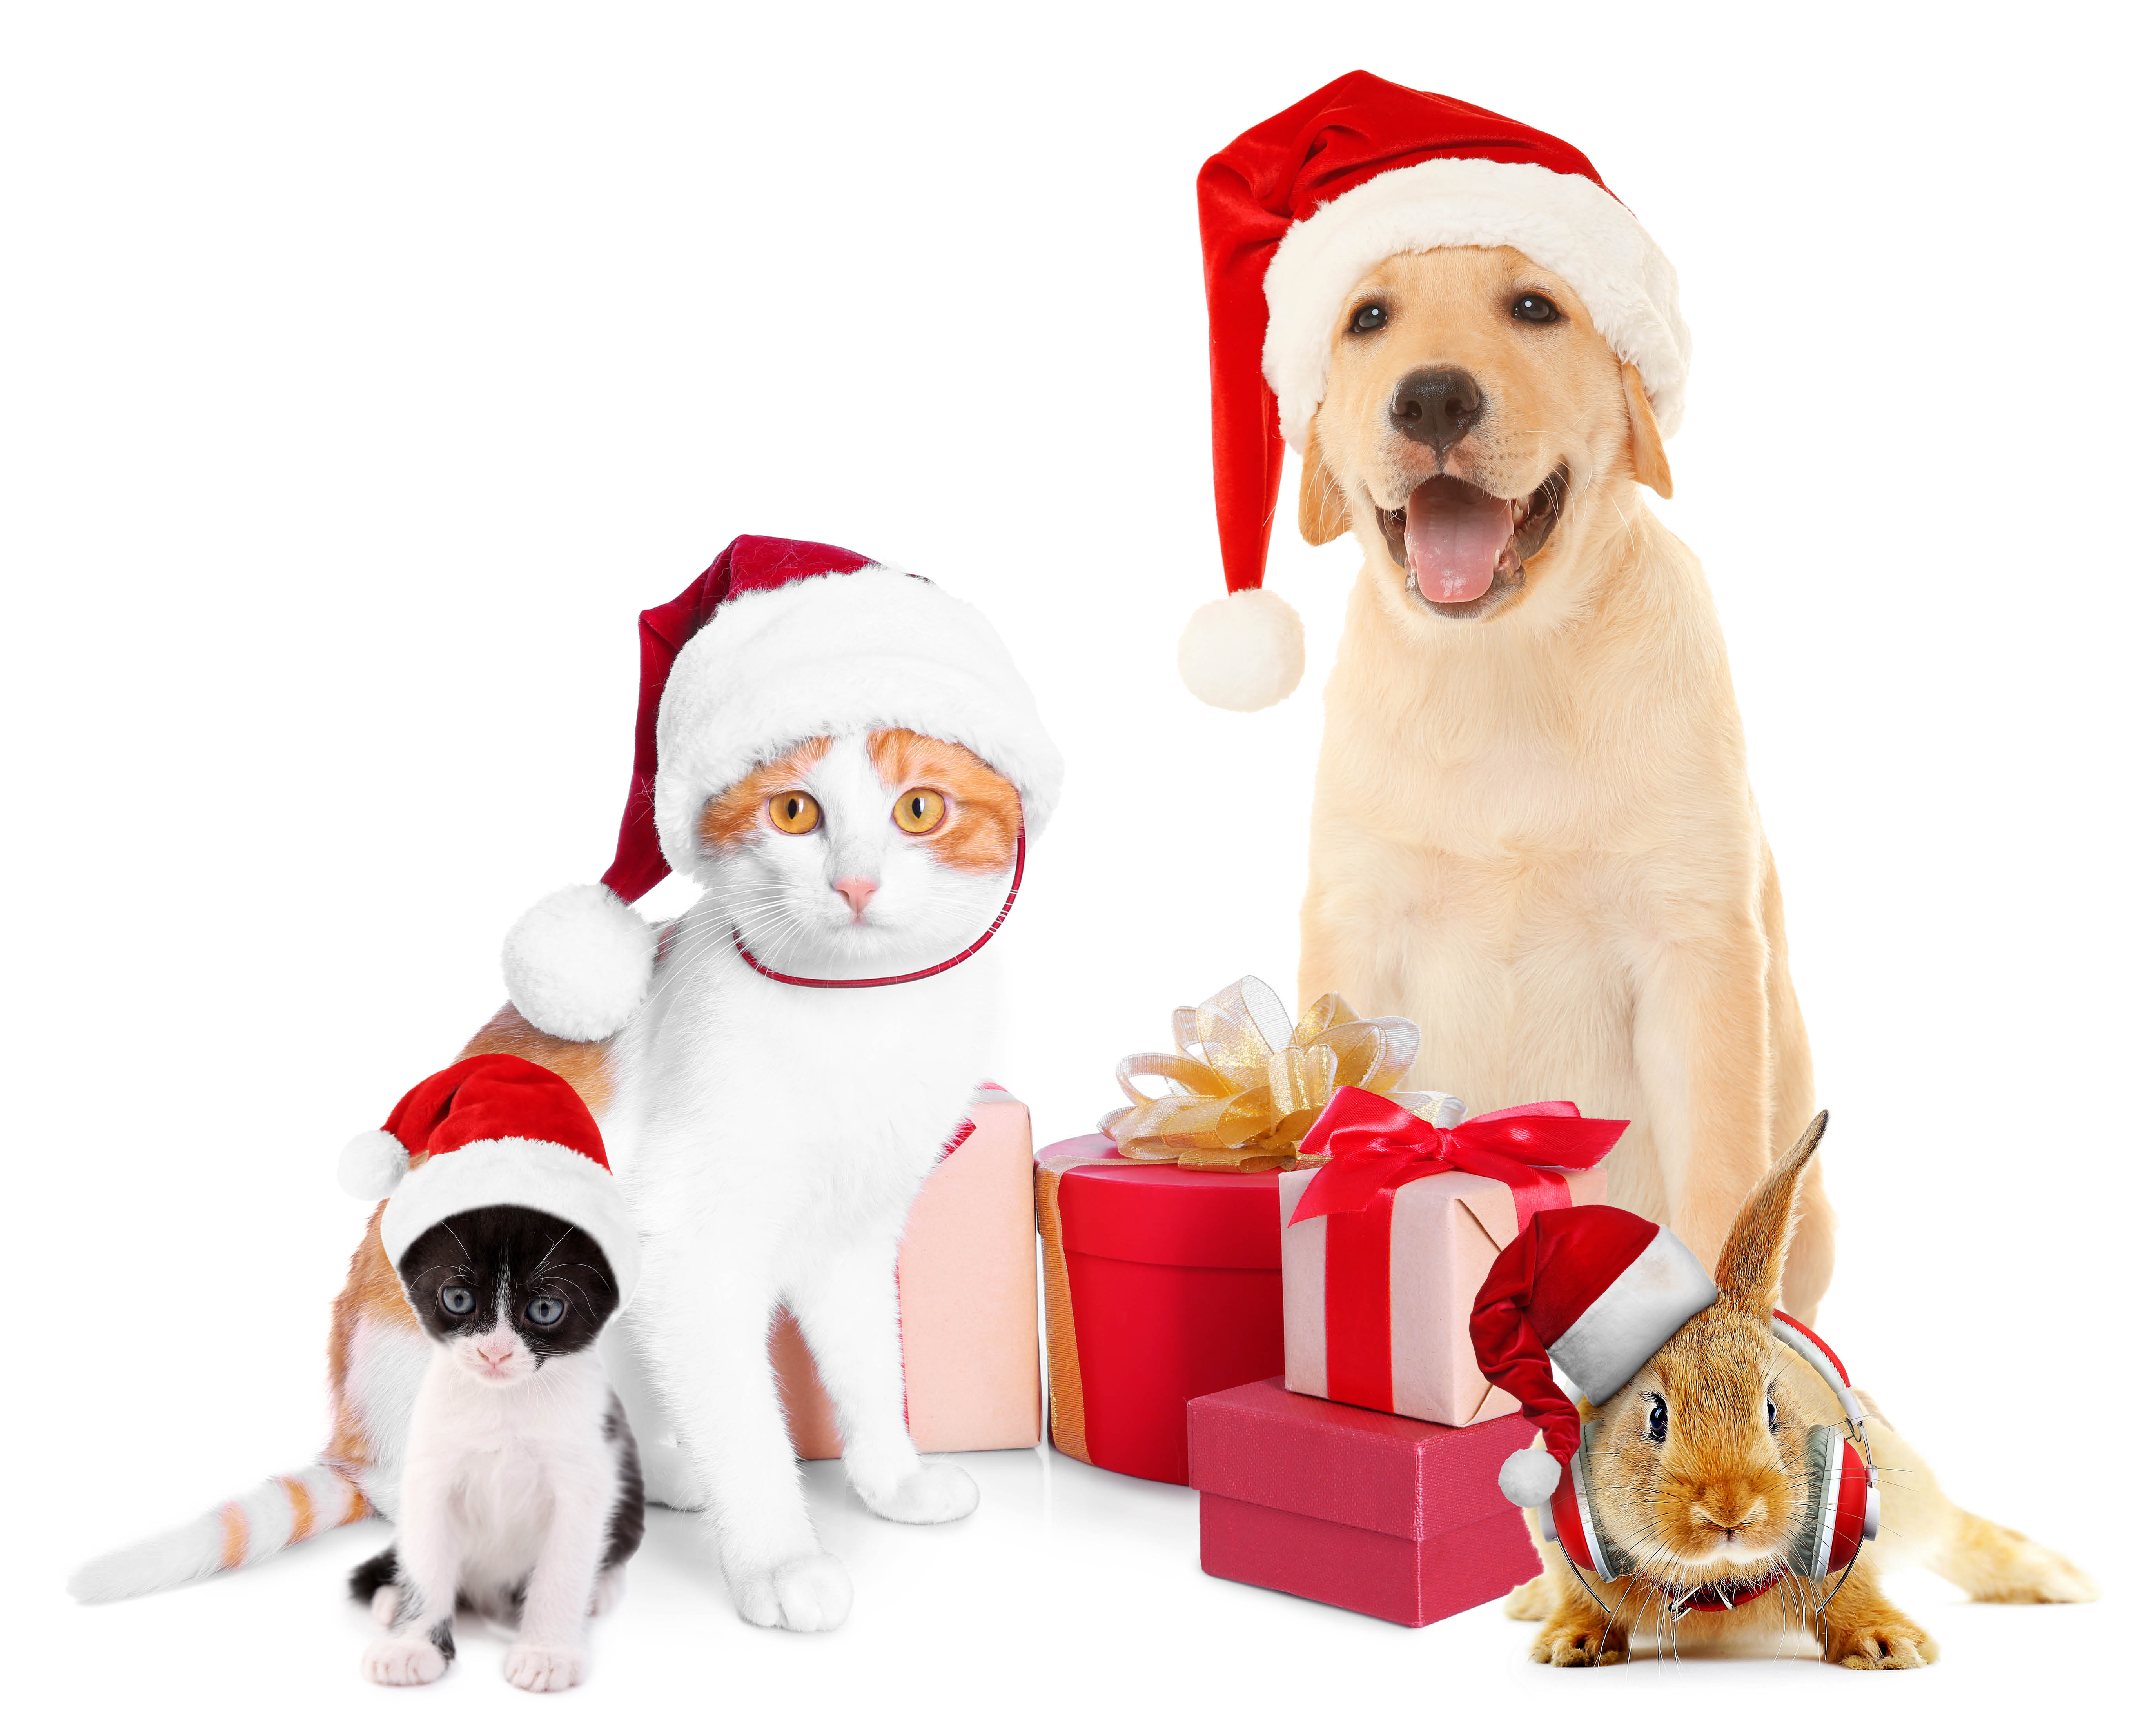 The Grange - Issaquah, WA - Healthy holiday gifts for your pets - pet food - pet treats - pet supplies